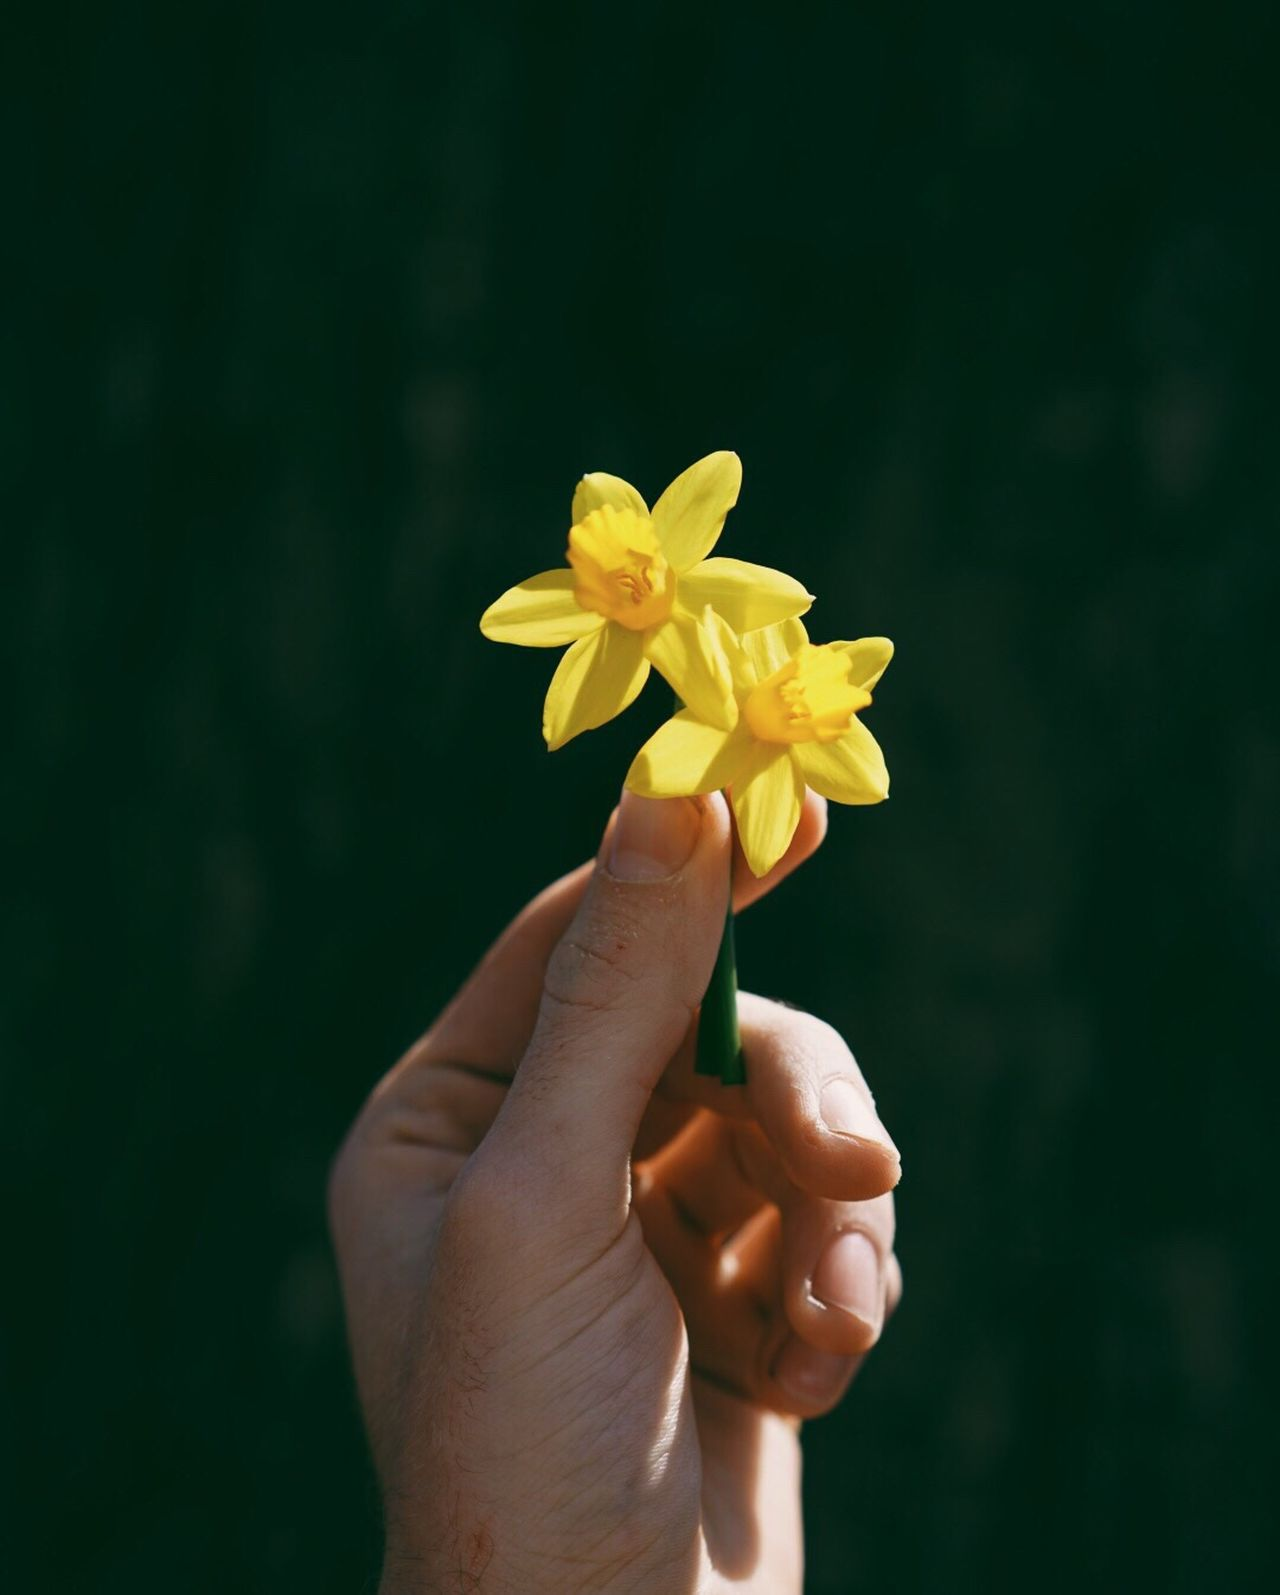 Human Hand Human Body Part Flower One Person Close-up Human Finger Holding Flower Head Yellow Freshness Fragility People Nature Adults Only Day One Woman Only Adult Only Women Outdoors Spring April